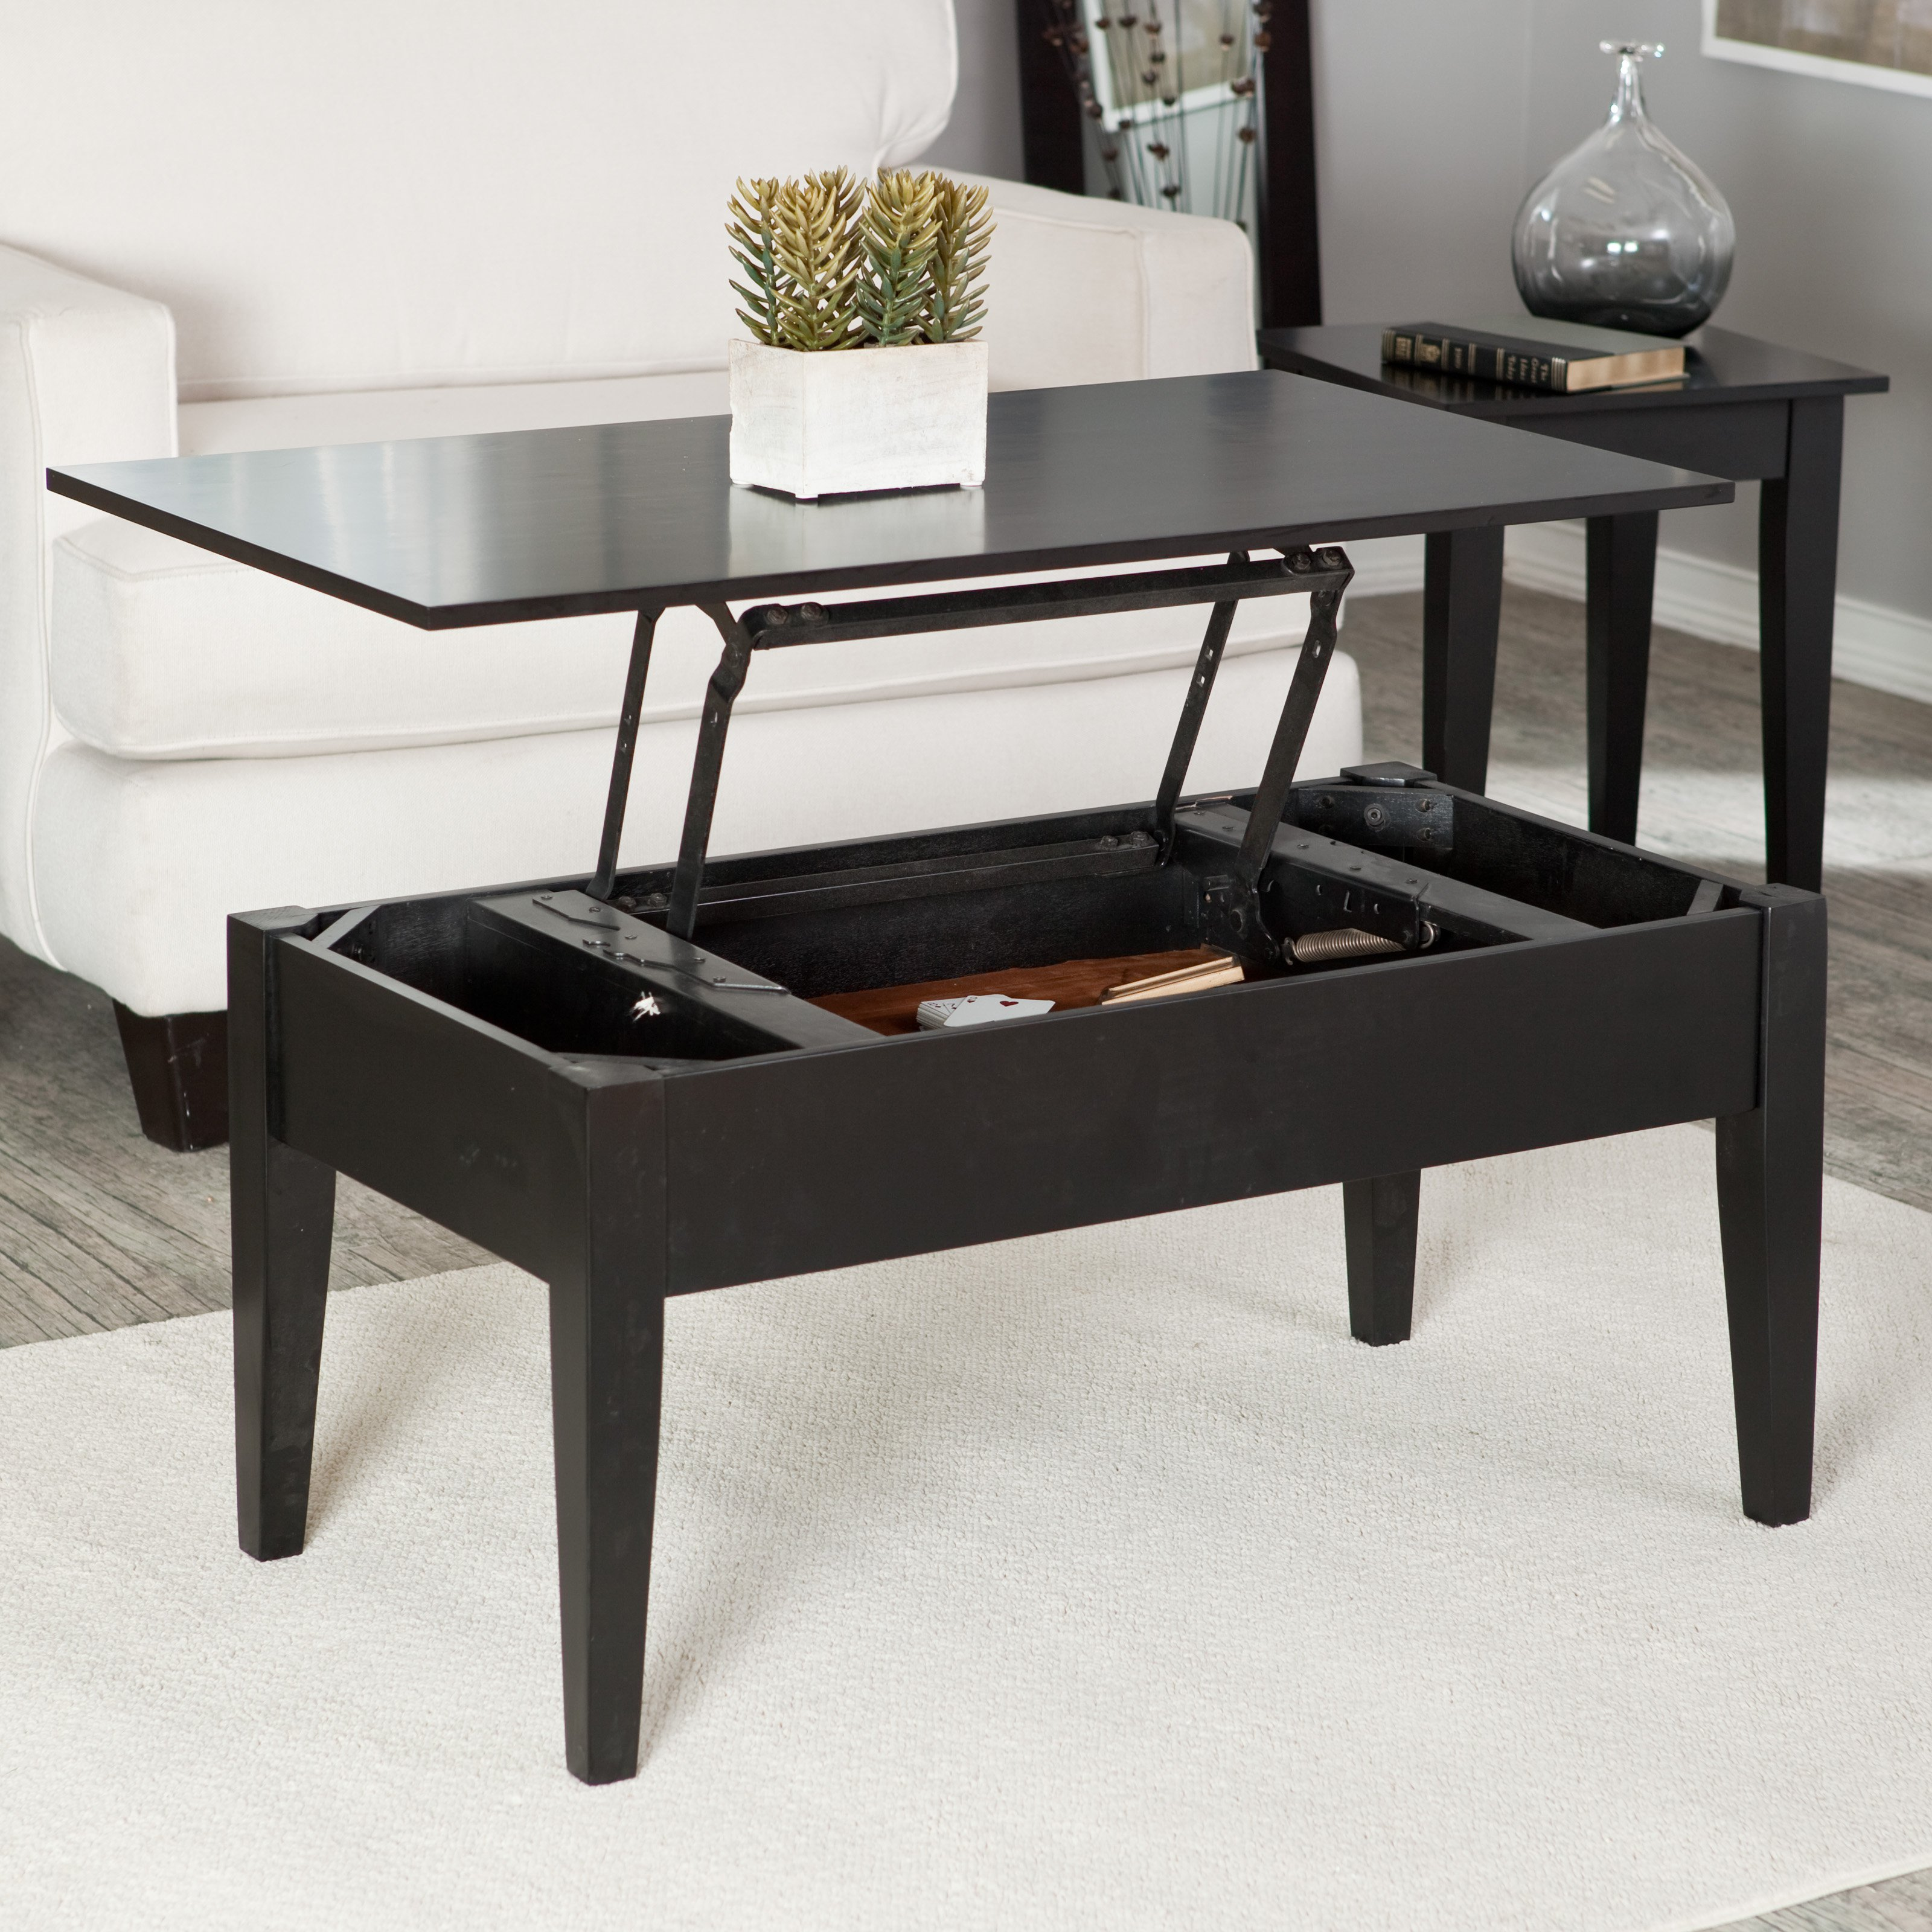 turner lift top coffee table - espresso | hayneedle QZBCLIL